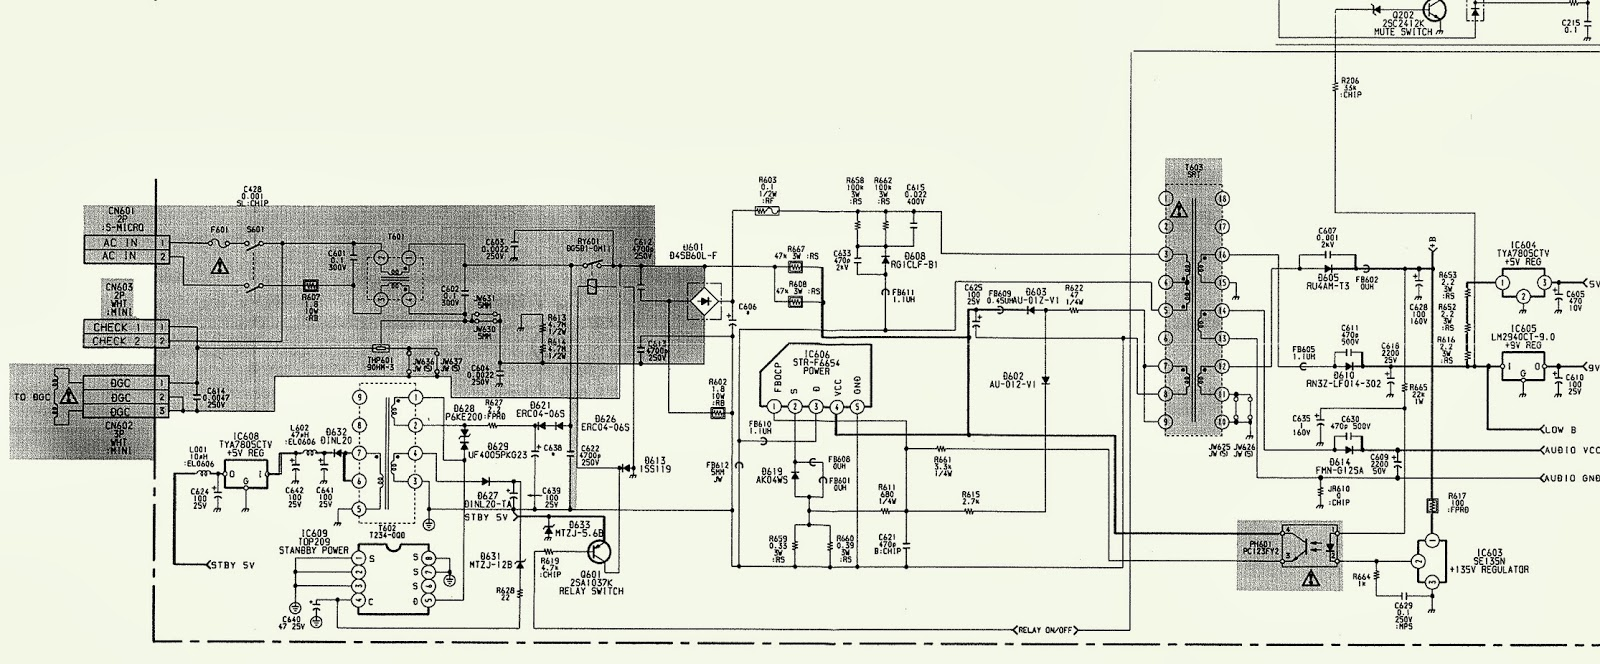 Sensational Sony Tv Circuit Diagram Together With Led Tv Schematic Diagram Wiring Cloud Oideiuggs Outletorg